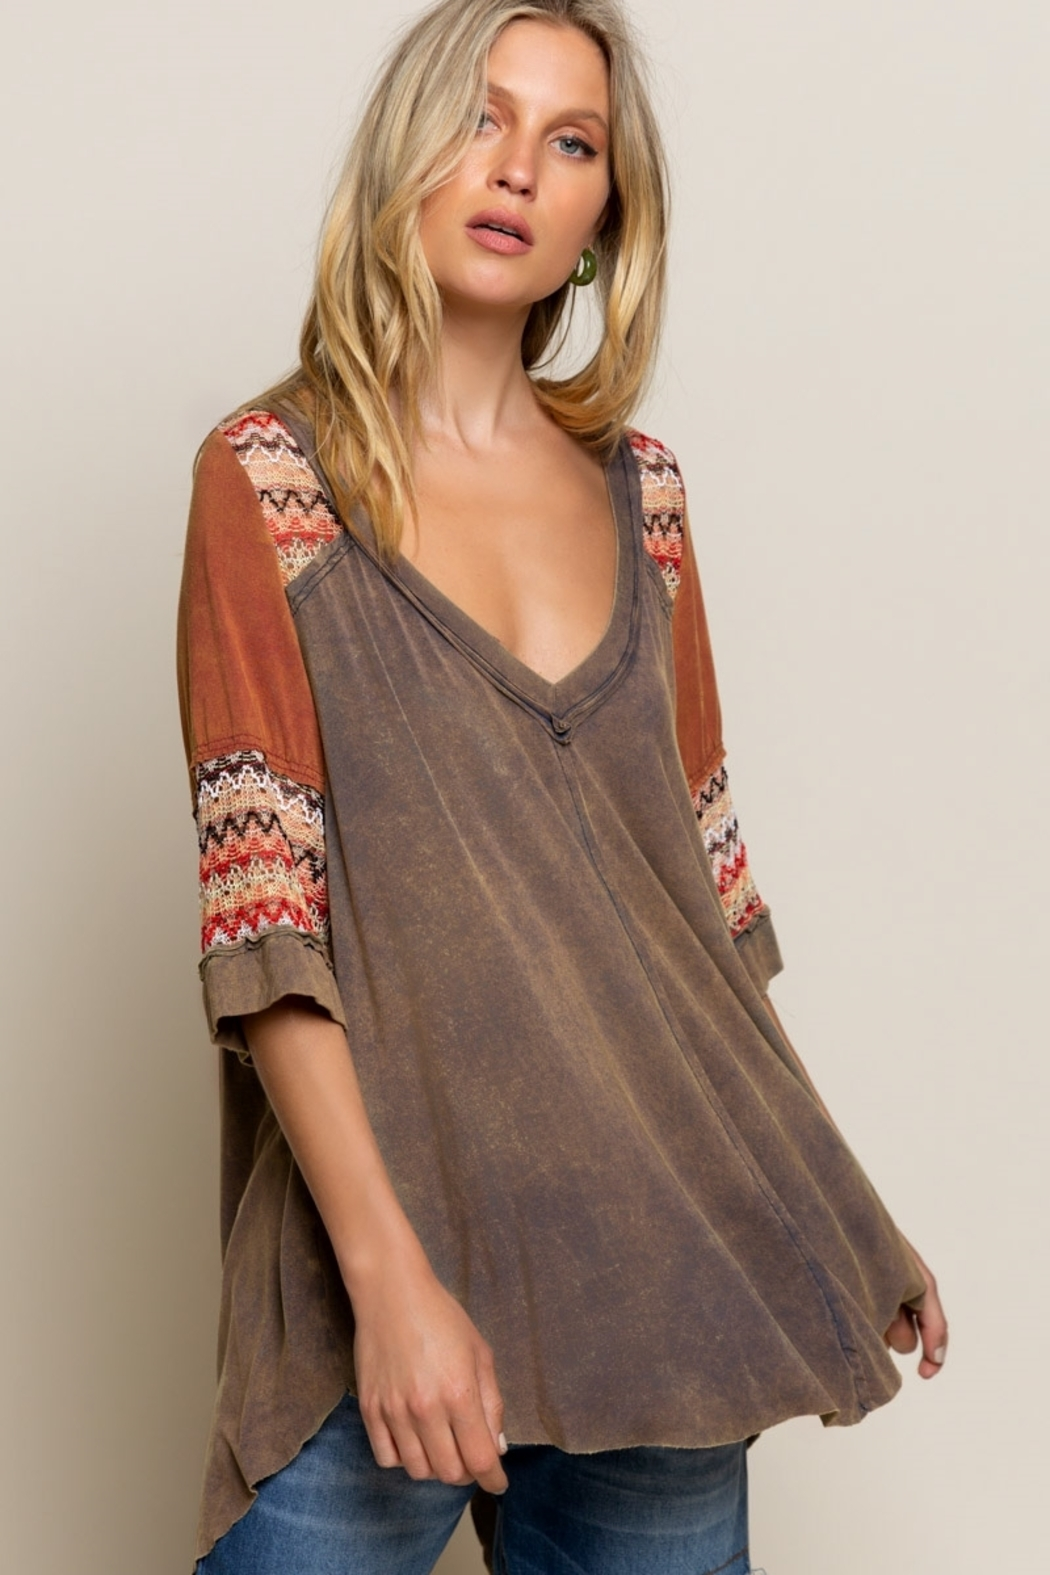 Pol Clothing BOHO Olive Brown Knit Top - Back Cropped Image